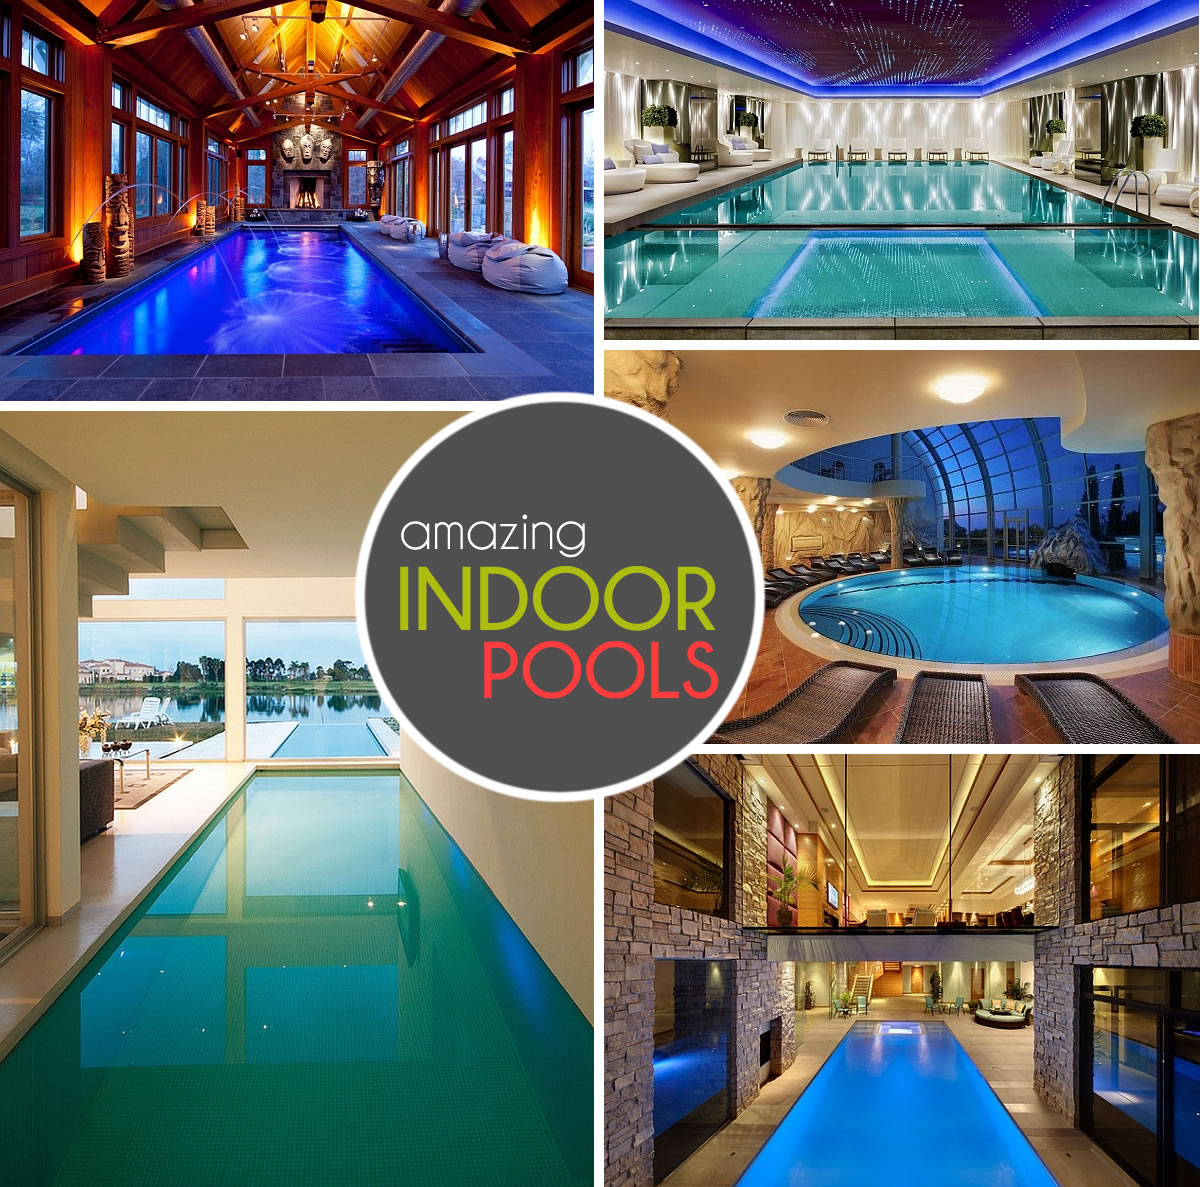 Swimming Pool Houses Designs pool design inspiration bycocooncom villa design hotel design bathroom design design products dutch designer brand cocoon lap pools pinterest View In Gallery Indoor Pools